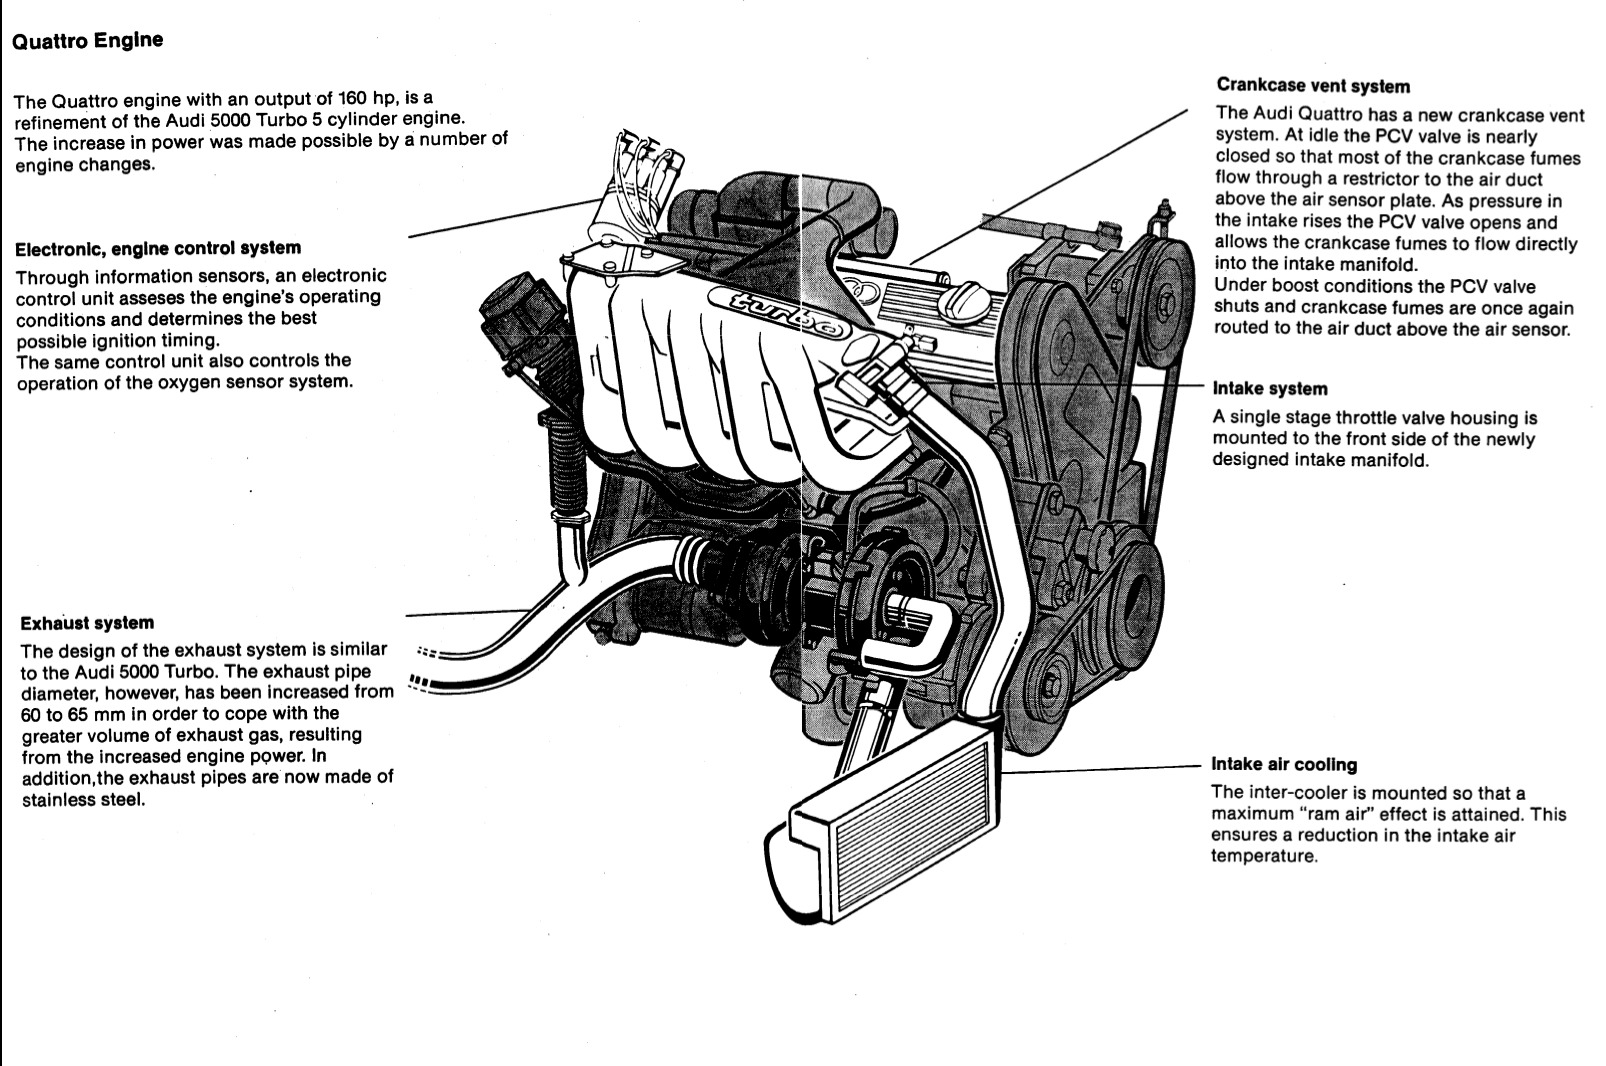 1999 Jetta Vr6 Engine Diagram Wiring Library Honda Reflex 2006 Audi S4 Harness Imageresizertool Com 2002 Vw Headlights